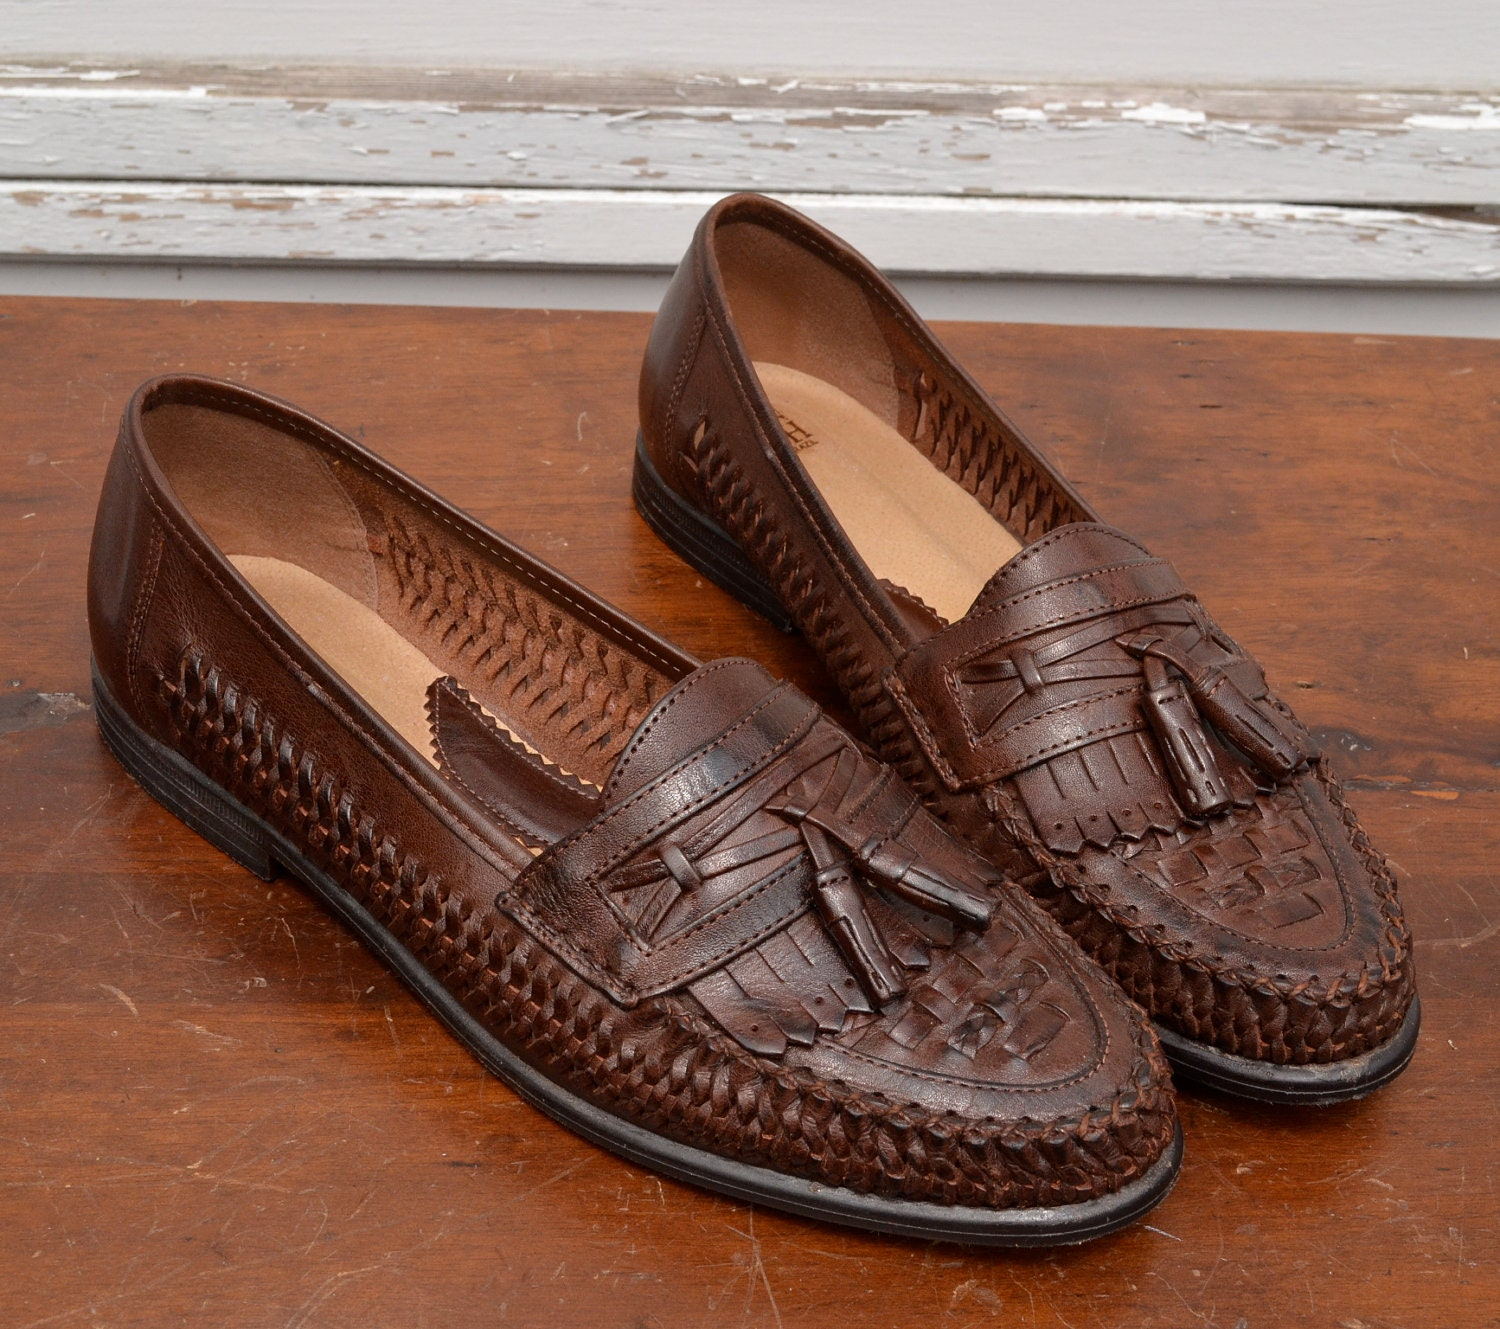 Vintage Mens Woven Leather Loafers By Nunn Bush Size 10